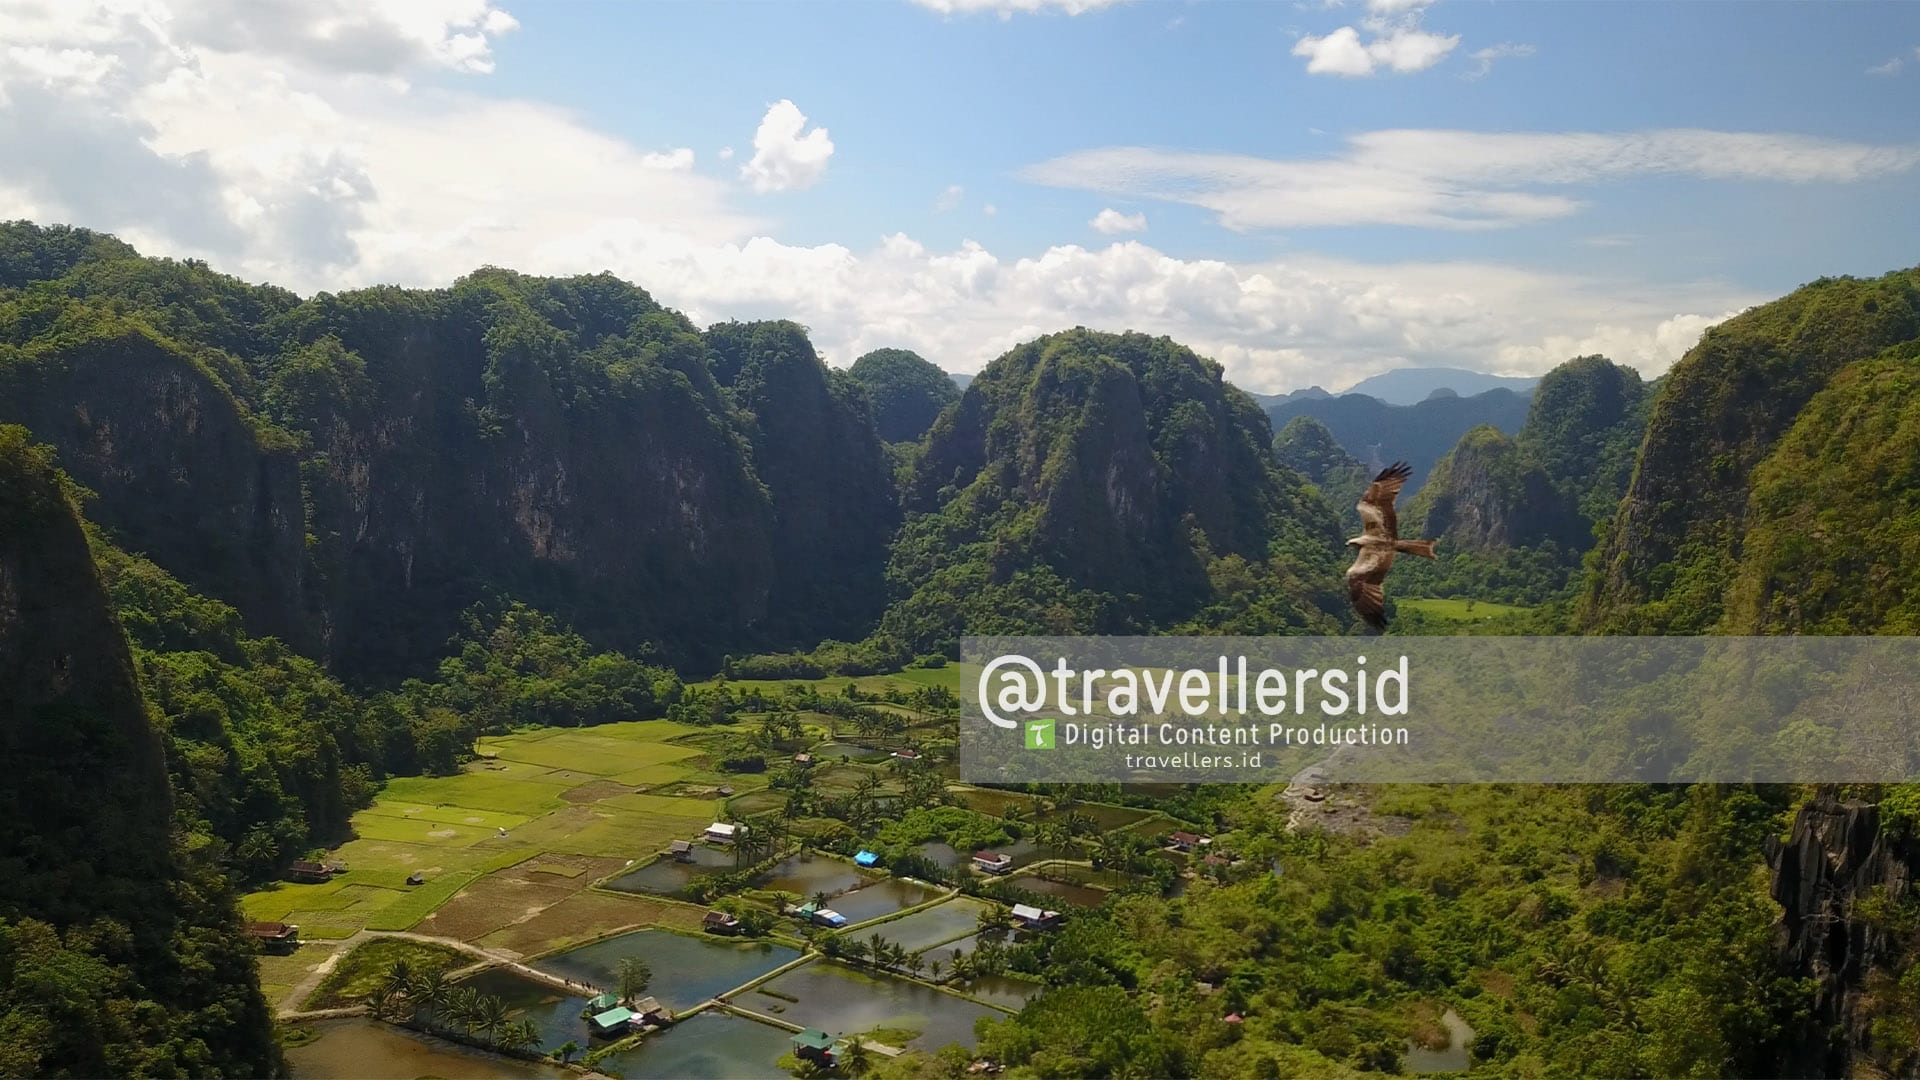 Rammang-rammang, Maros, South Sulawesi, Indonesia